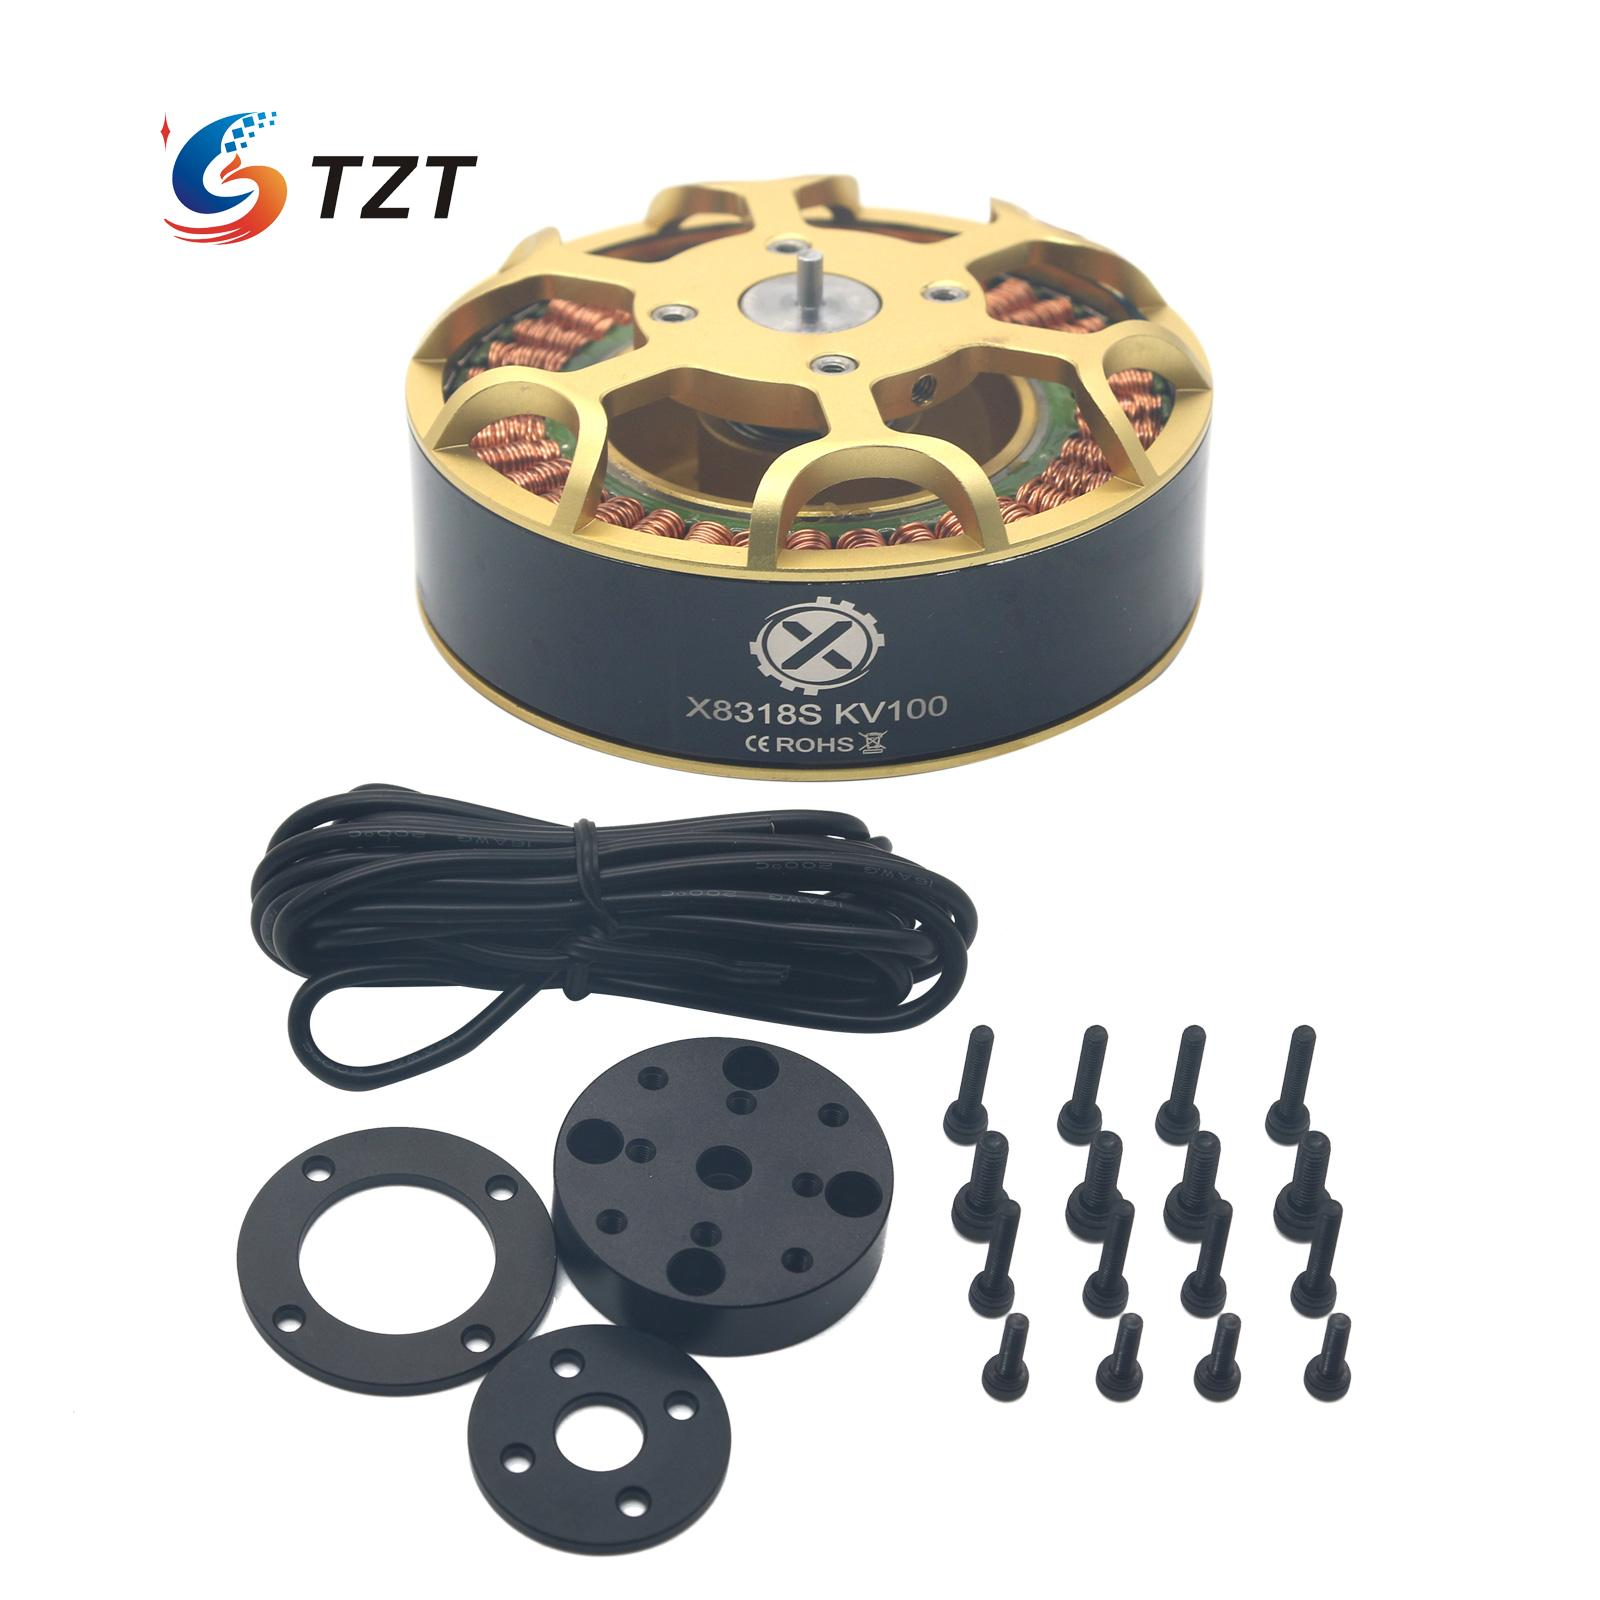 (hly) X8318s Brushless Motor Kv100 Kv120 Mehrachsige 36n40p Für Fpv Racing Drone Multicopter